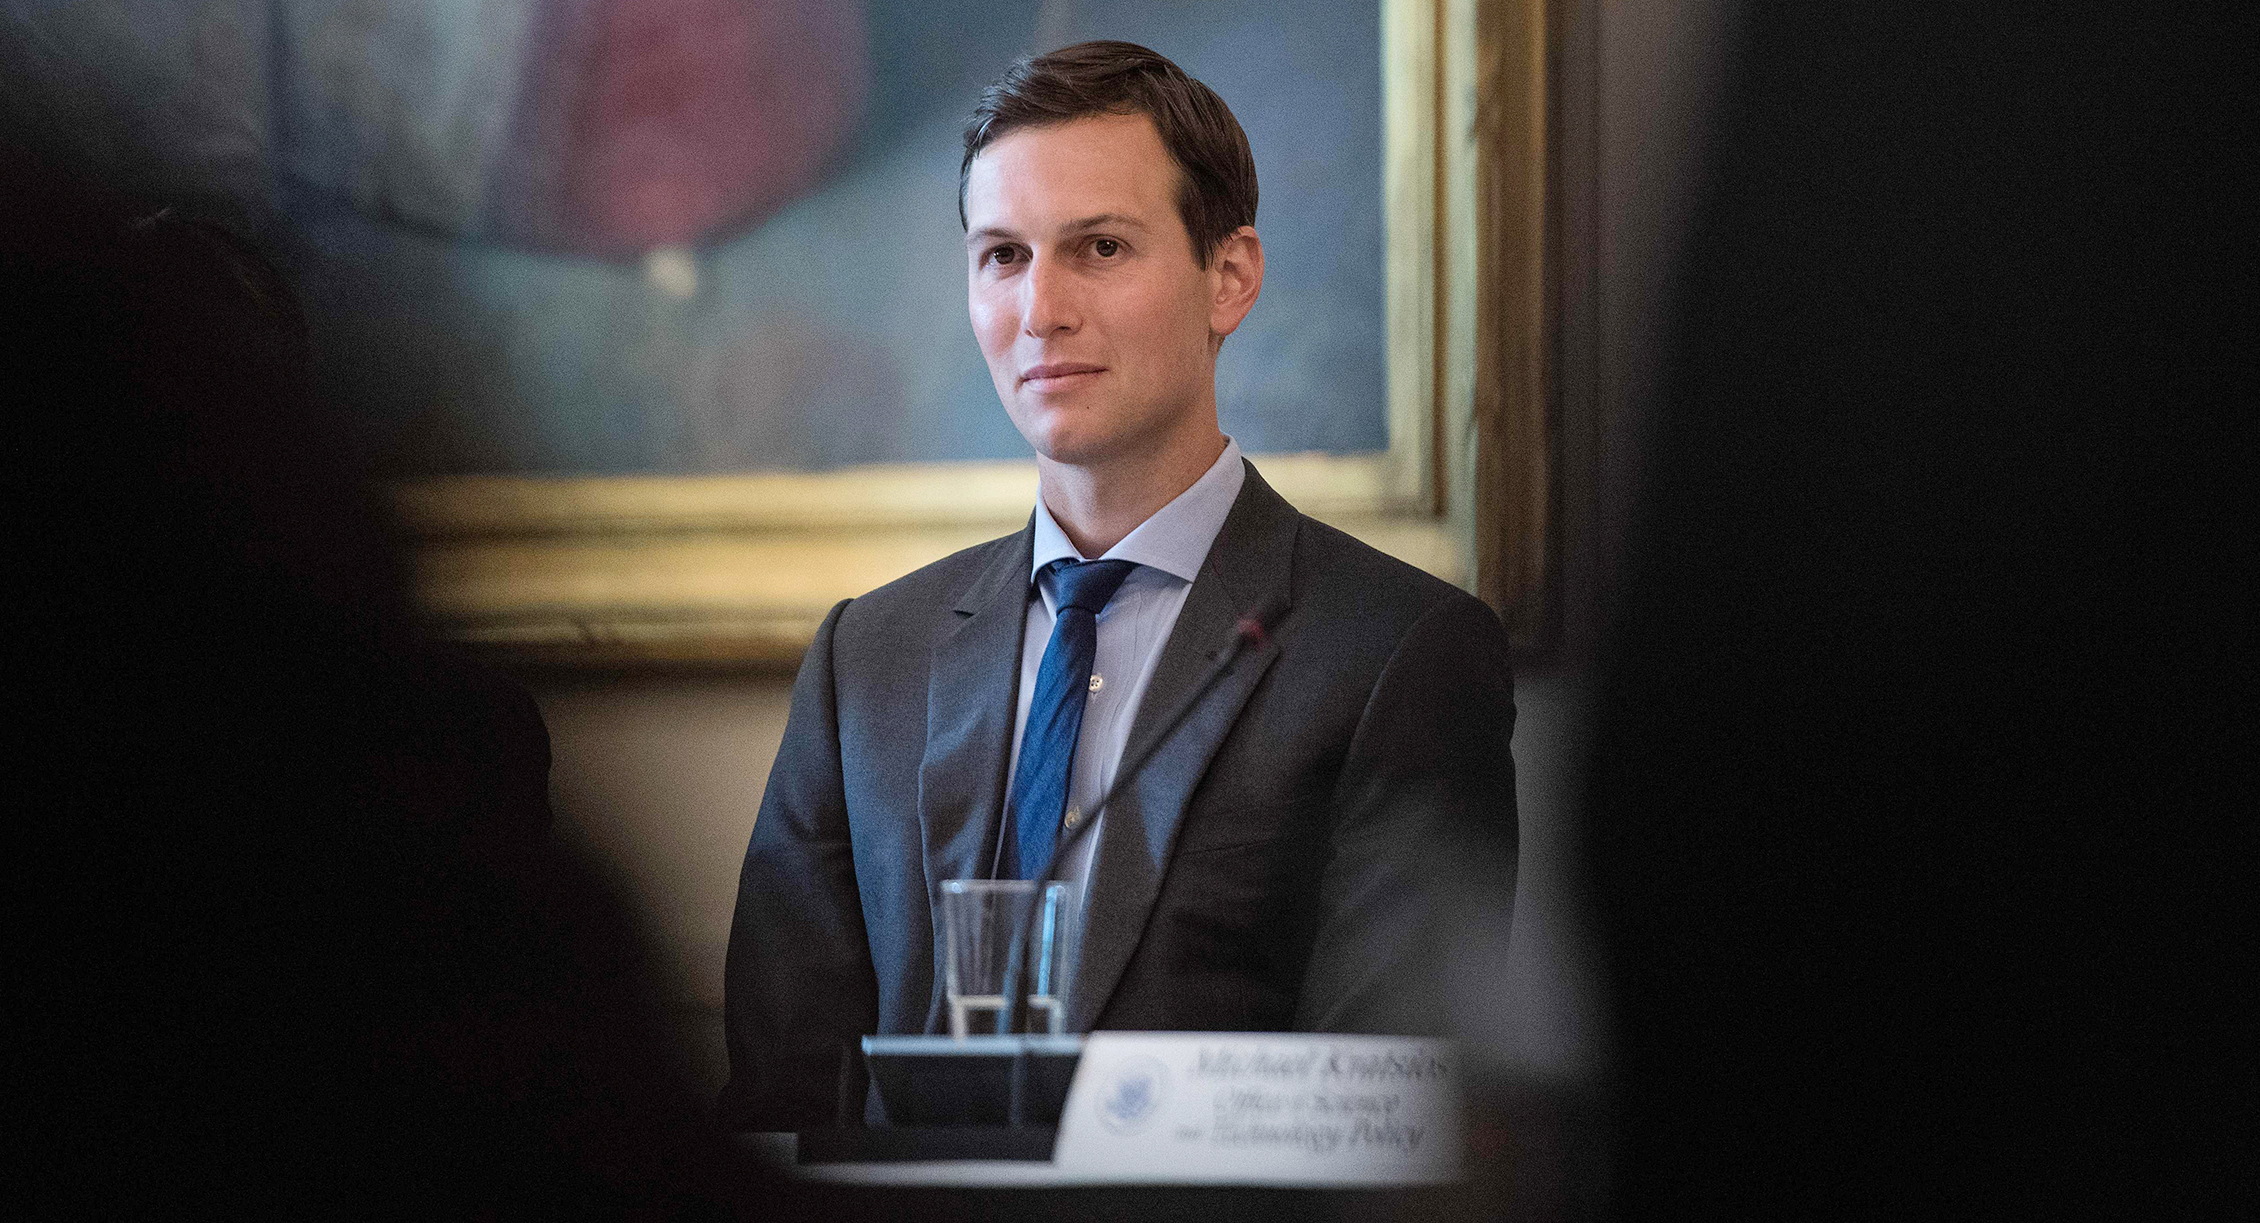 Jared Kushner Used Private Email Account in White House